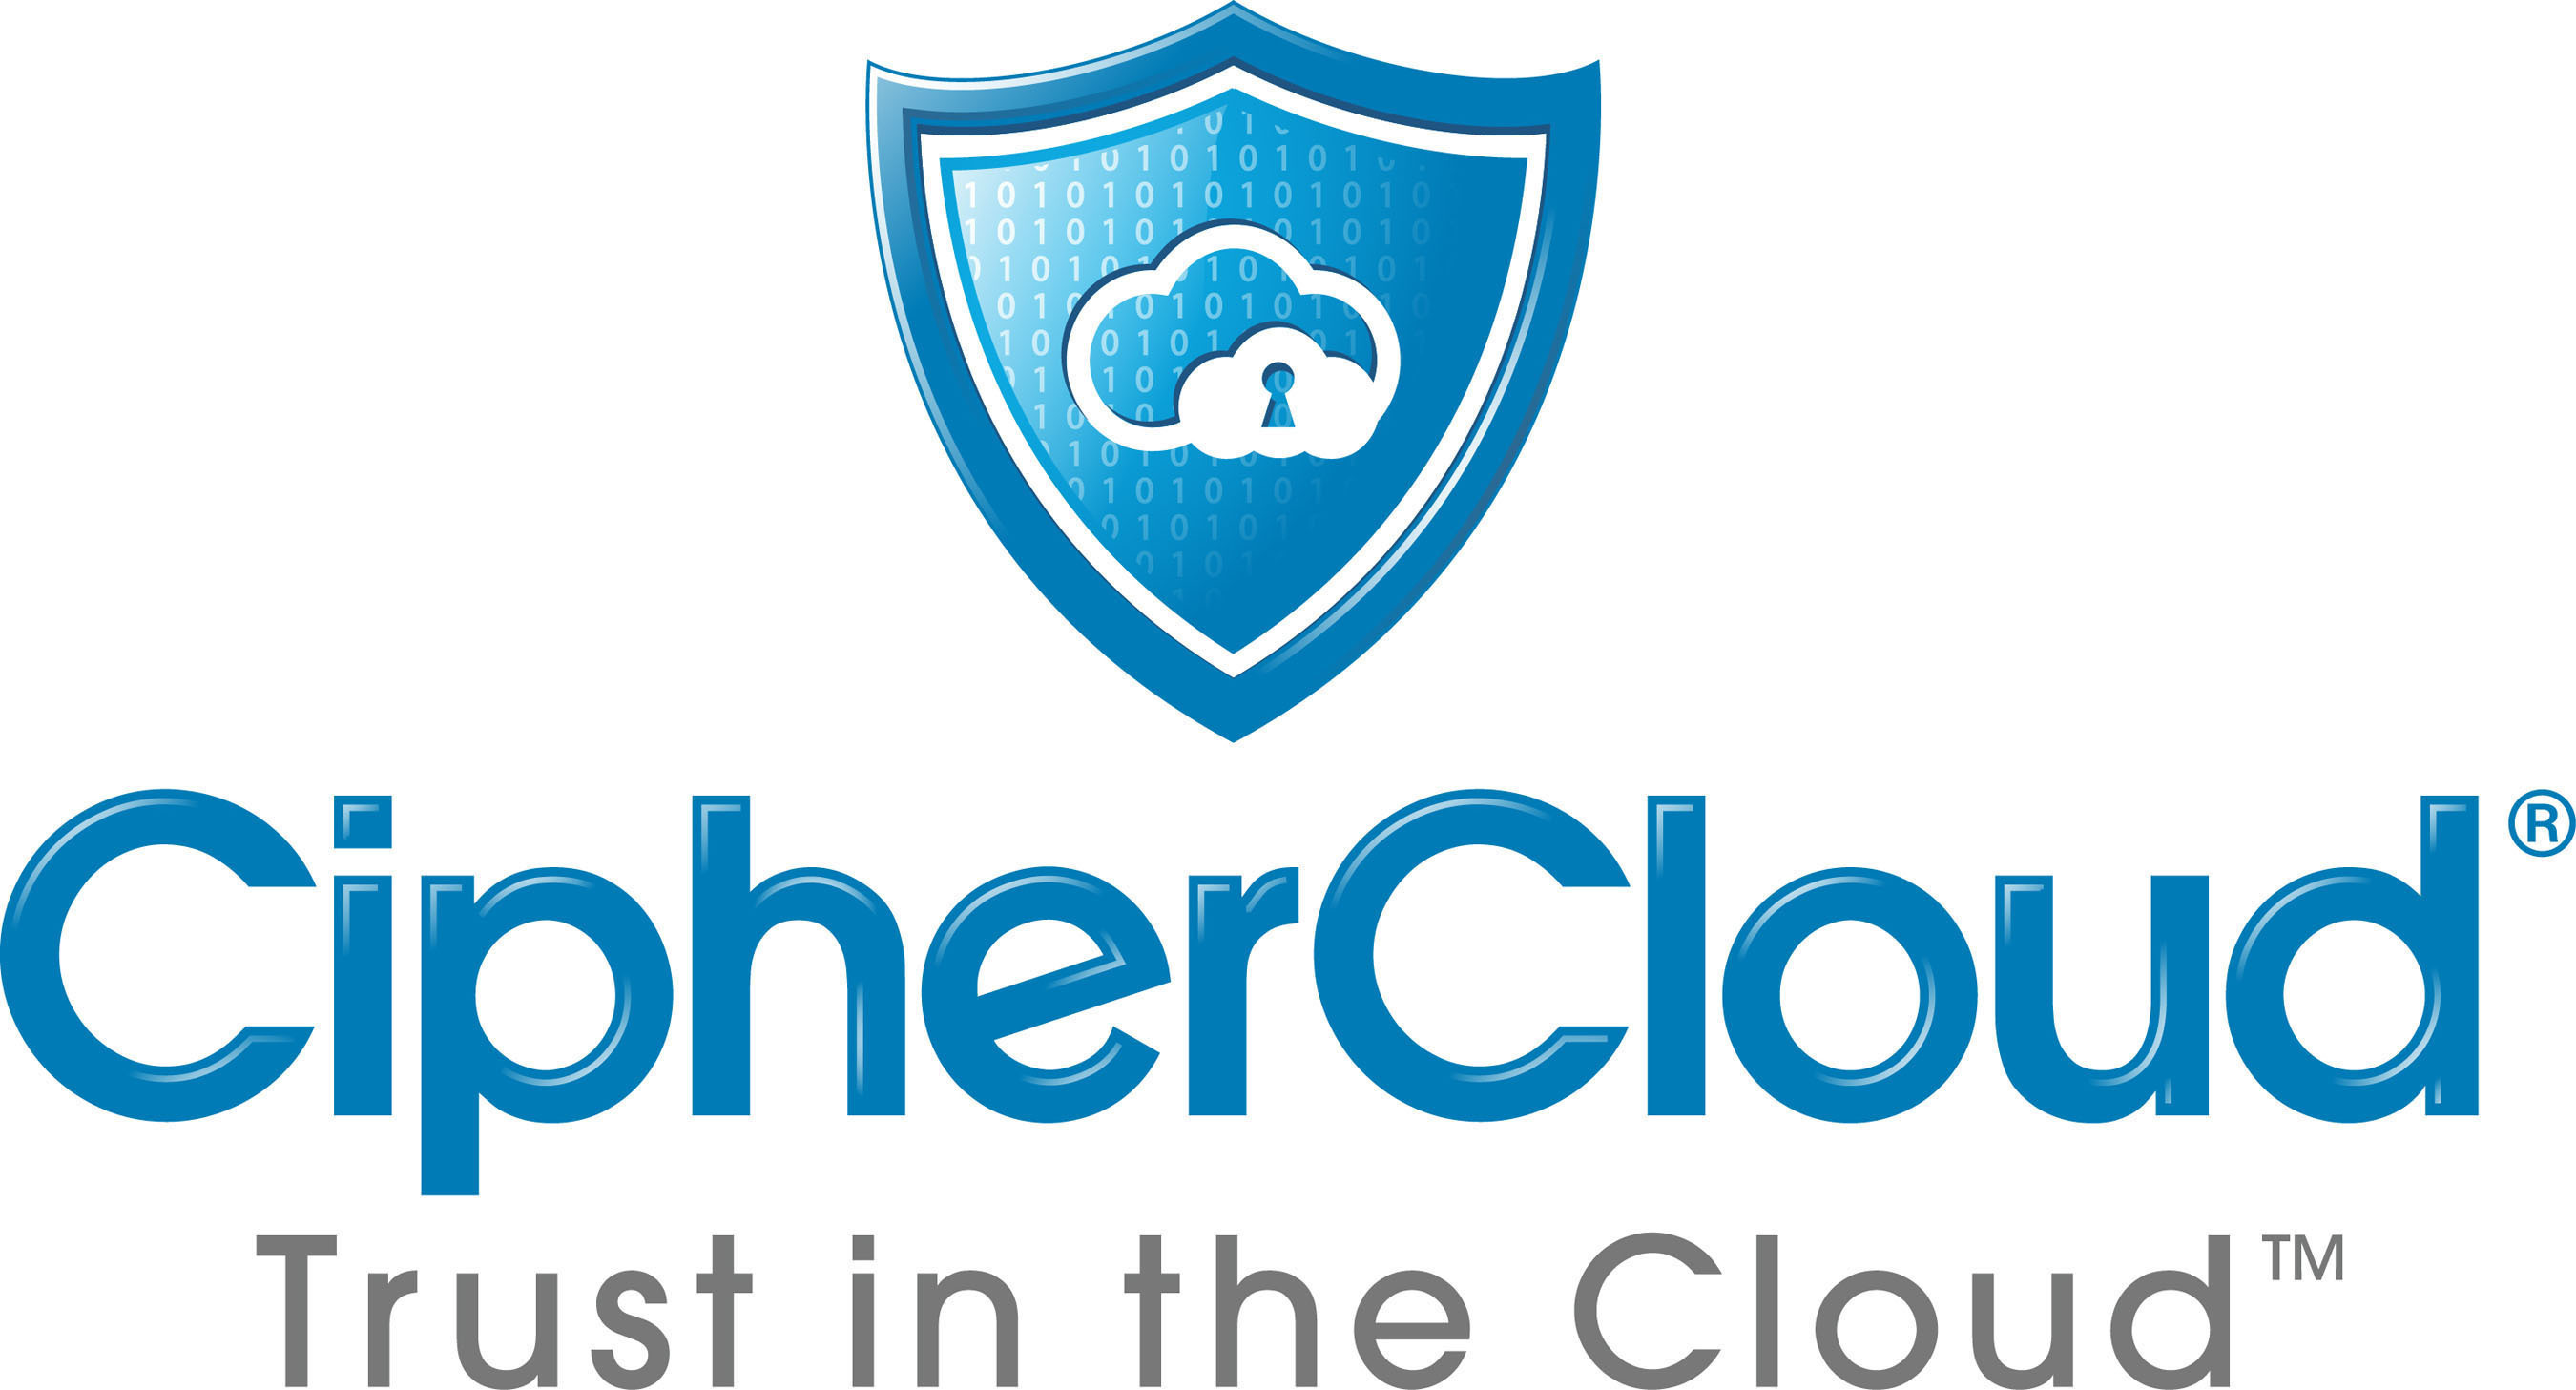 CipherCloud, the leader in cloud information protection, enables organizations to securely adopt cloud applications by overcoming data privacy, residency, security, and regulatory compliance risks. CipherCloud's open platform provides comprehensive security controls including encryption, tokenization, cloud data loss prevention, cloud malware detection, and activity monitoring.